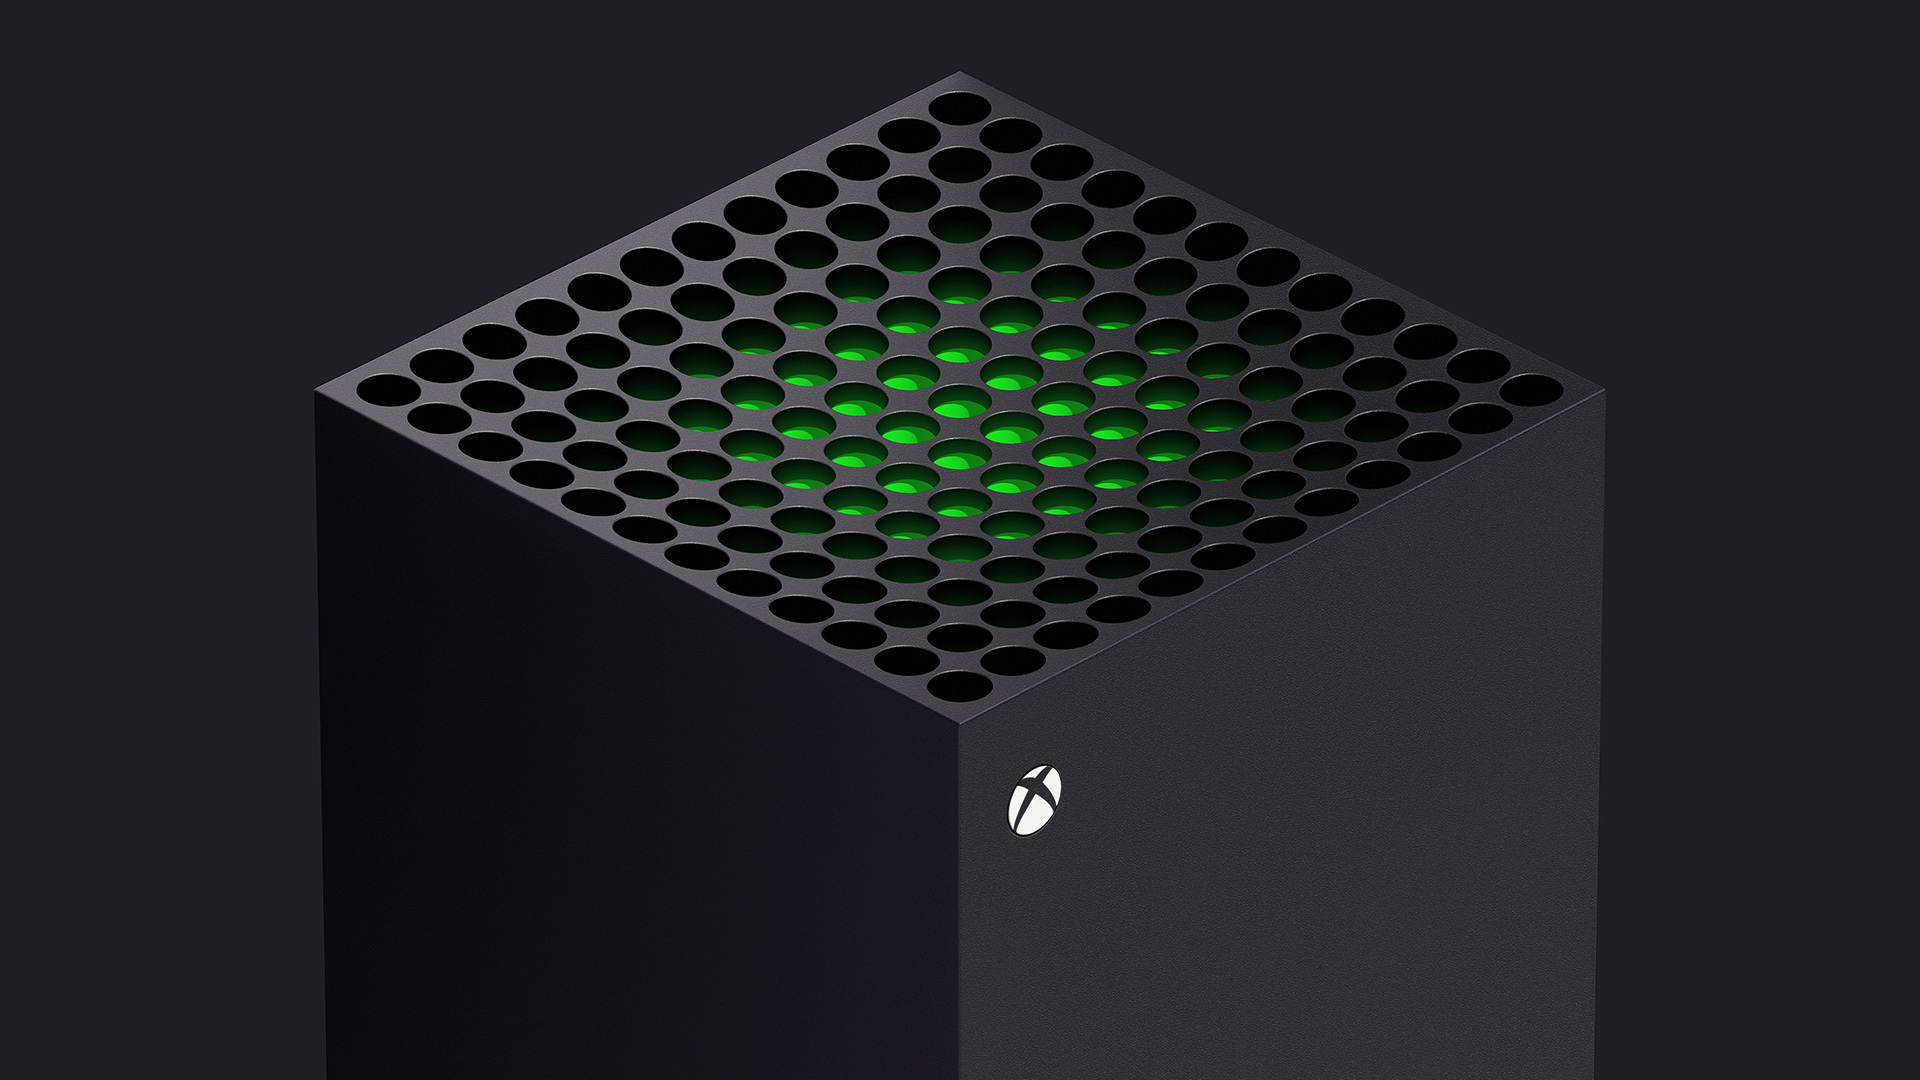 xbox-series-x-restock-issues-will-continue-to-be-'a-challenge'-for-'quite-a-while'